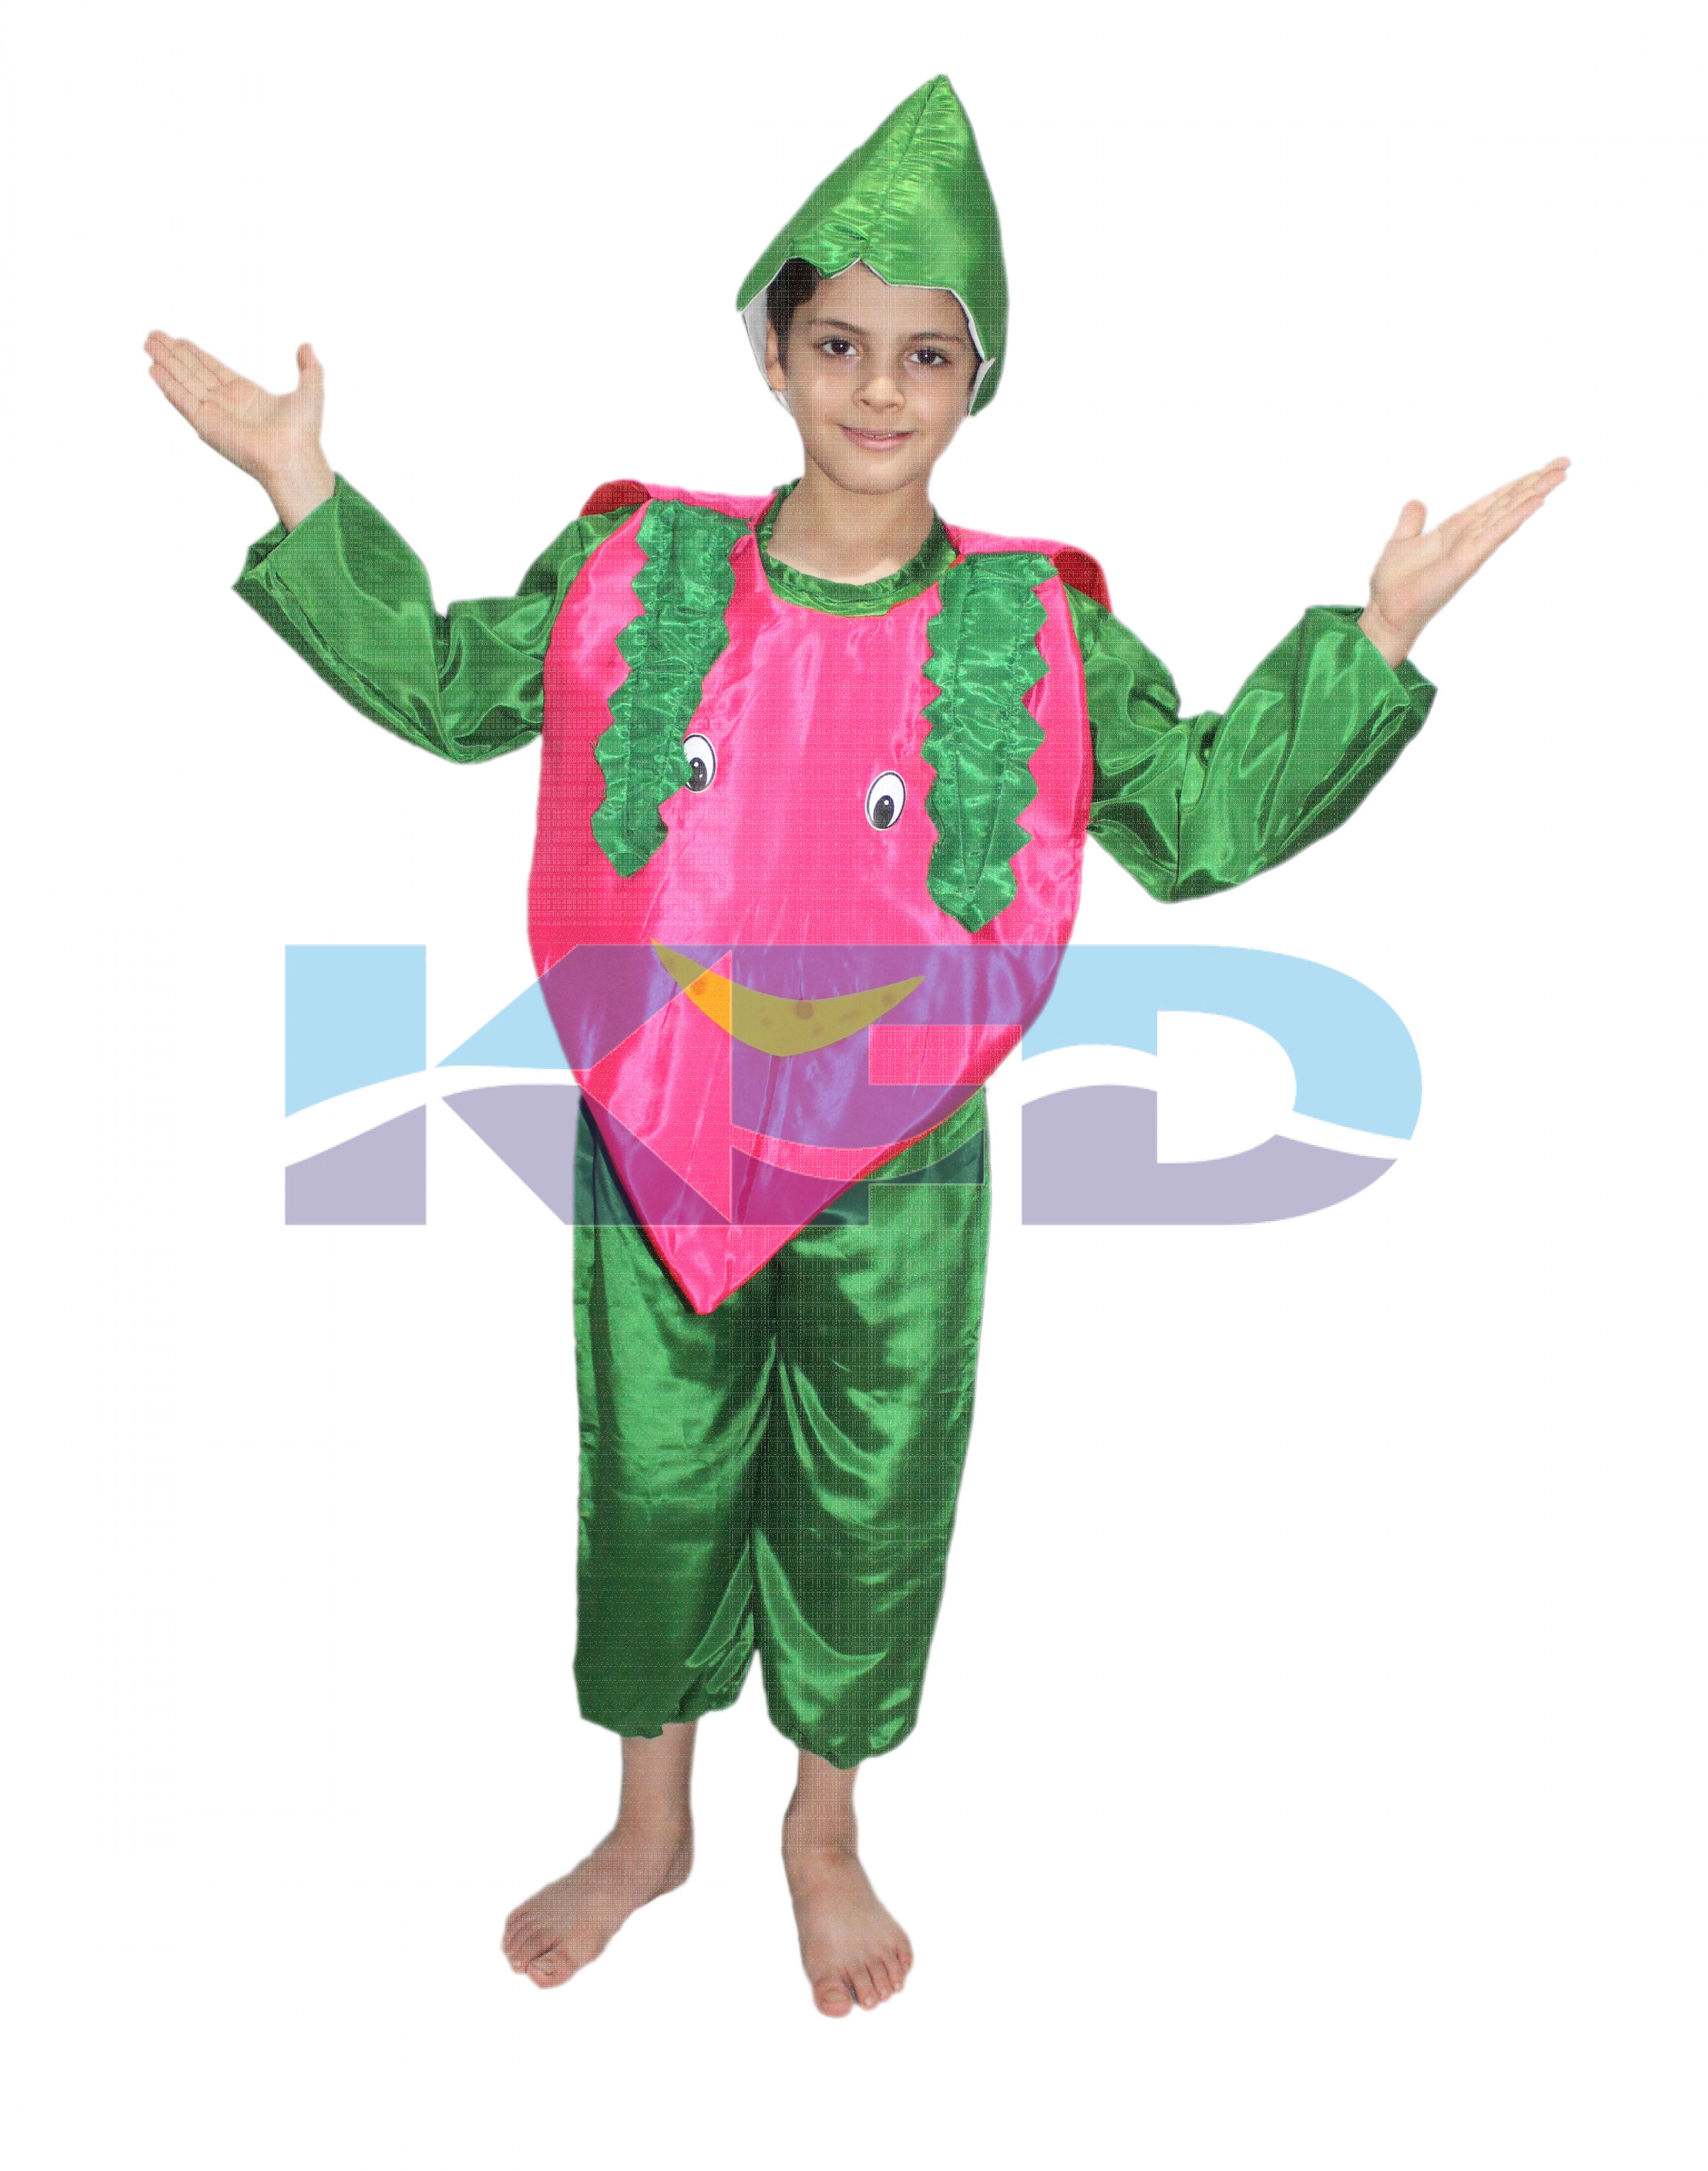 Onion fancy dress for kids,Vegetables Costume for School Annual function/Theme Party/Competition/Stage Shows Dress